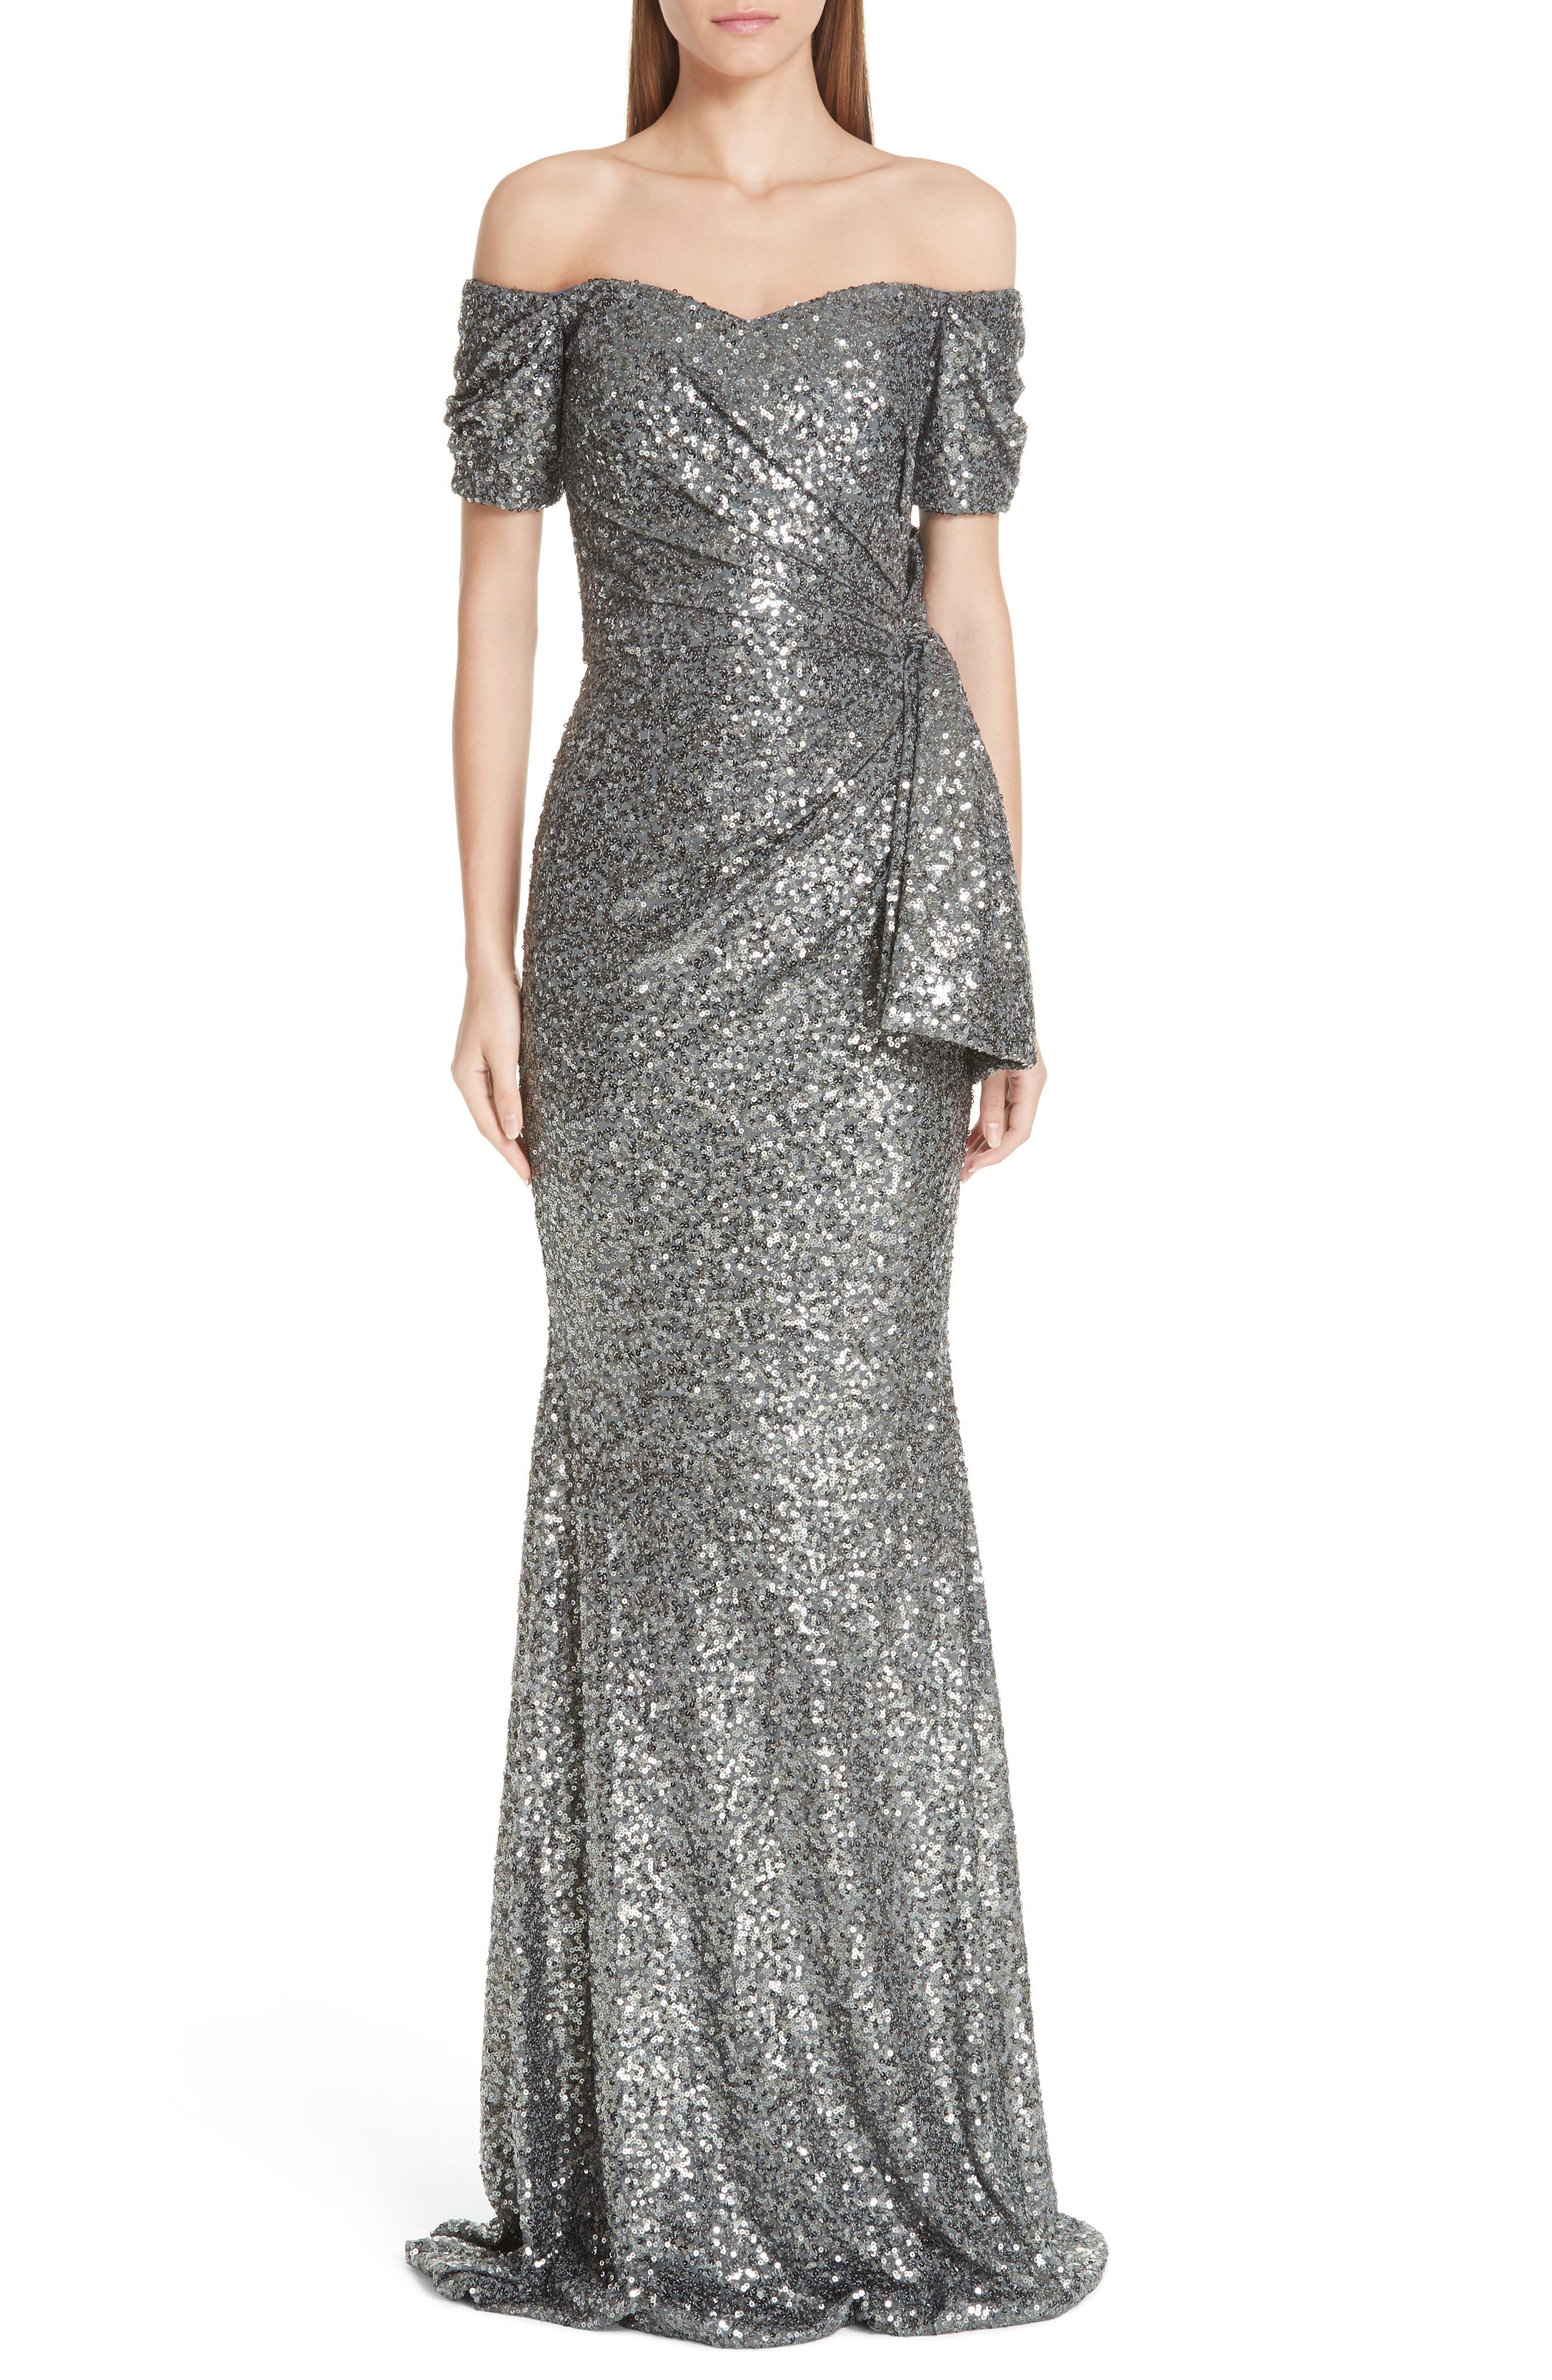 Bow Detail Sequin Off the Shoulder Gown,                             Main thumbnail 1, color,                             CHARCOAL